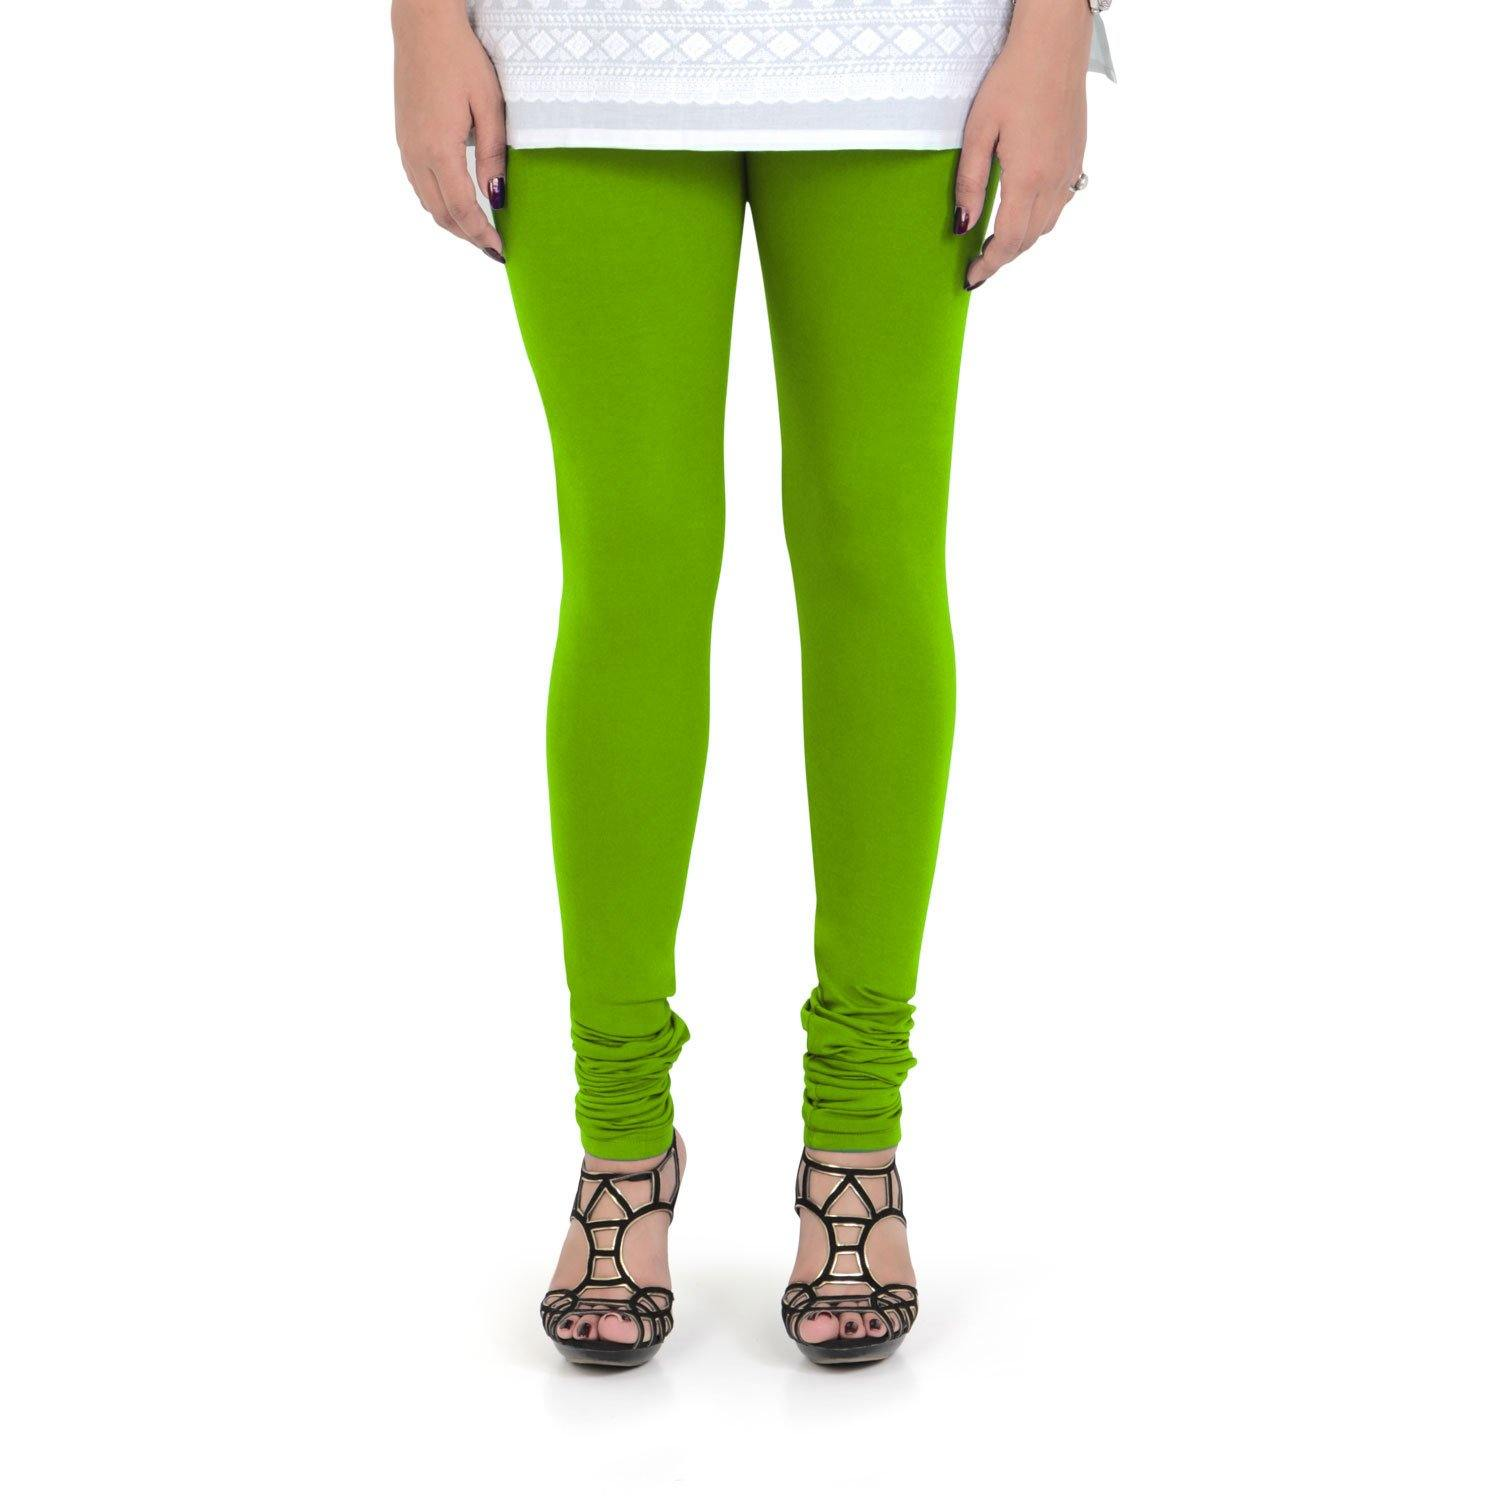 Vami Women's Cotton Stretchable Churidar Legging - Jasmine